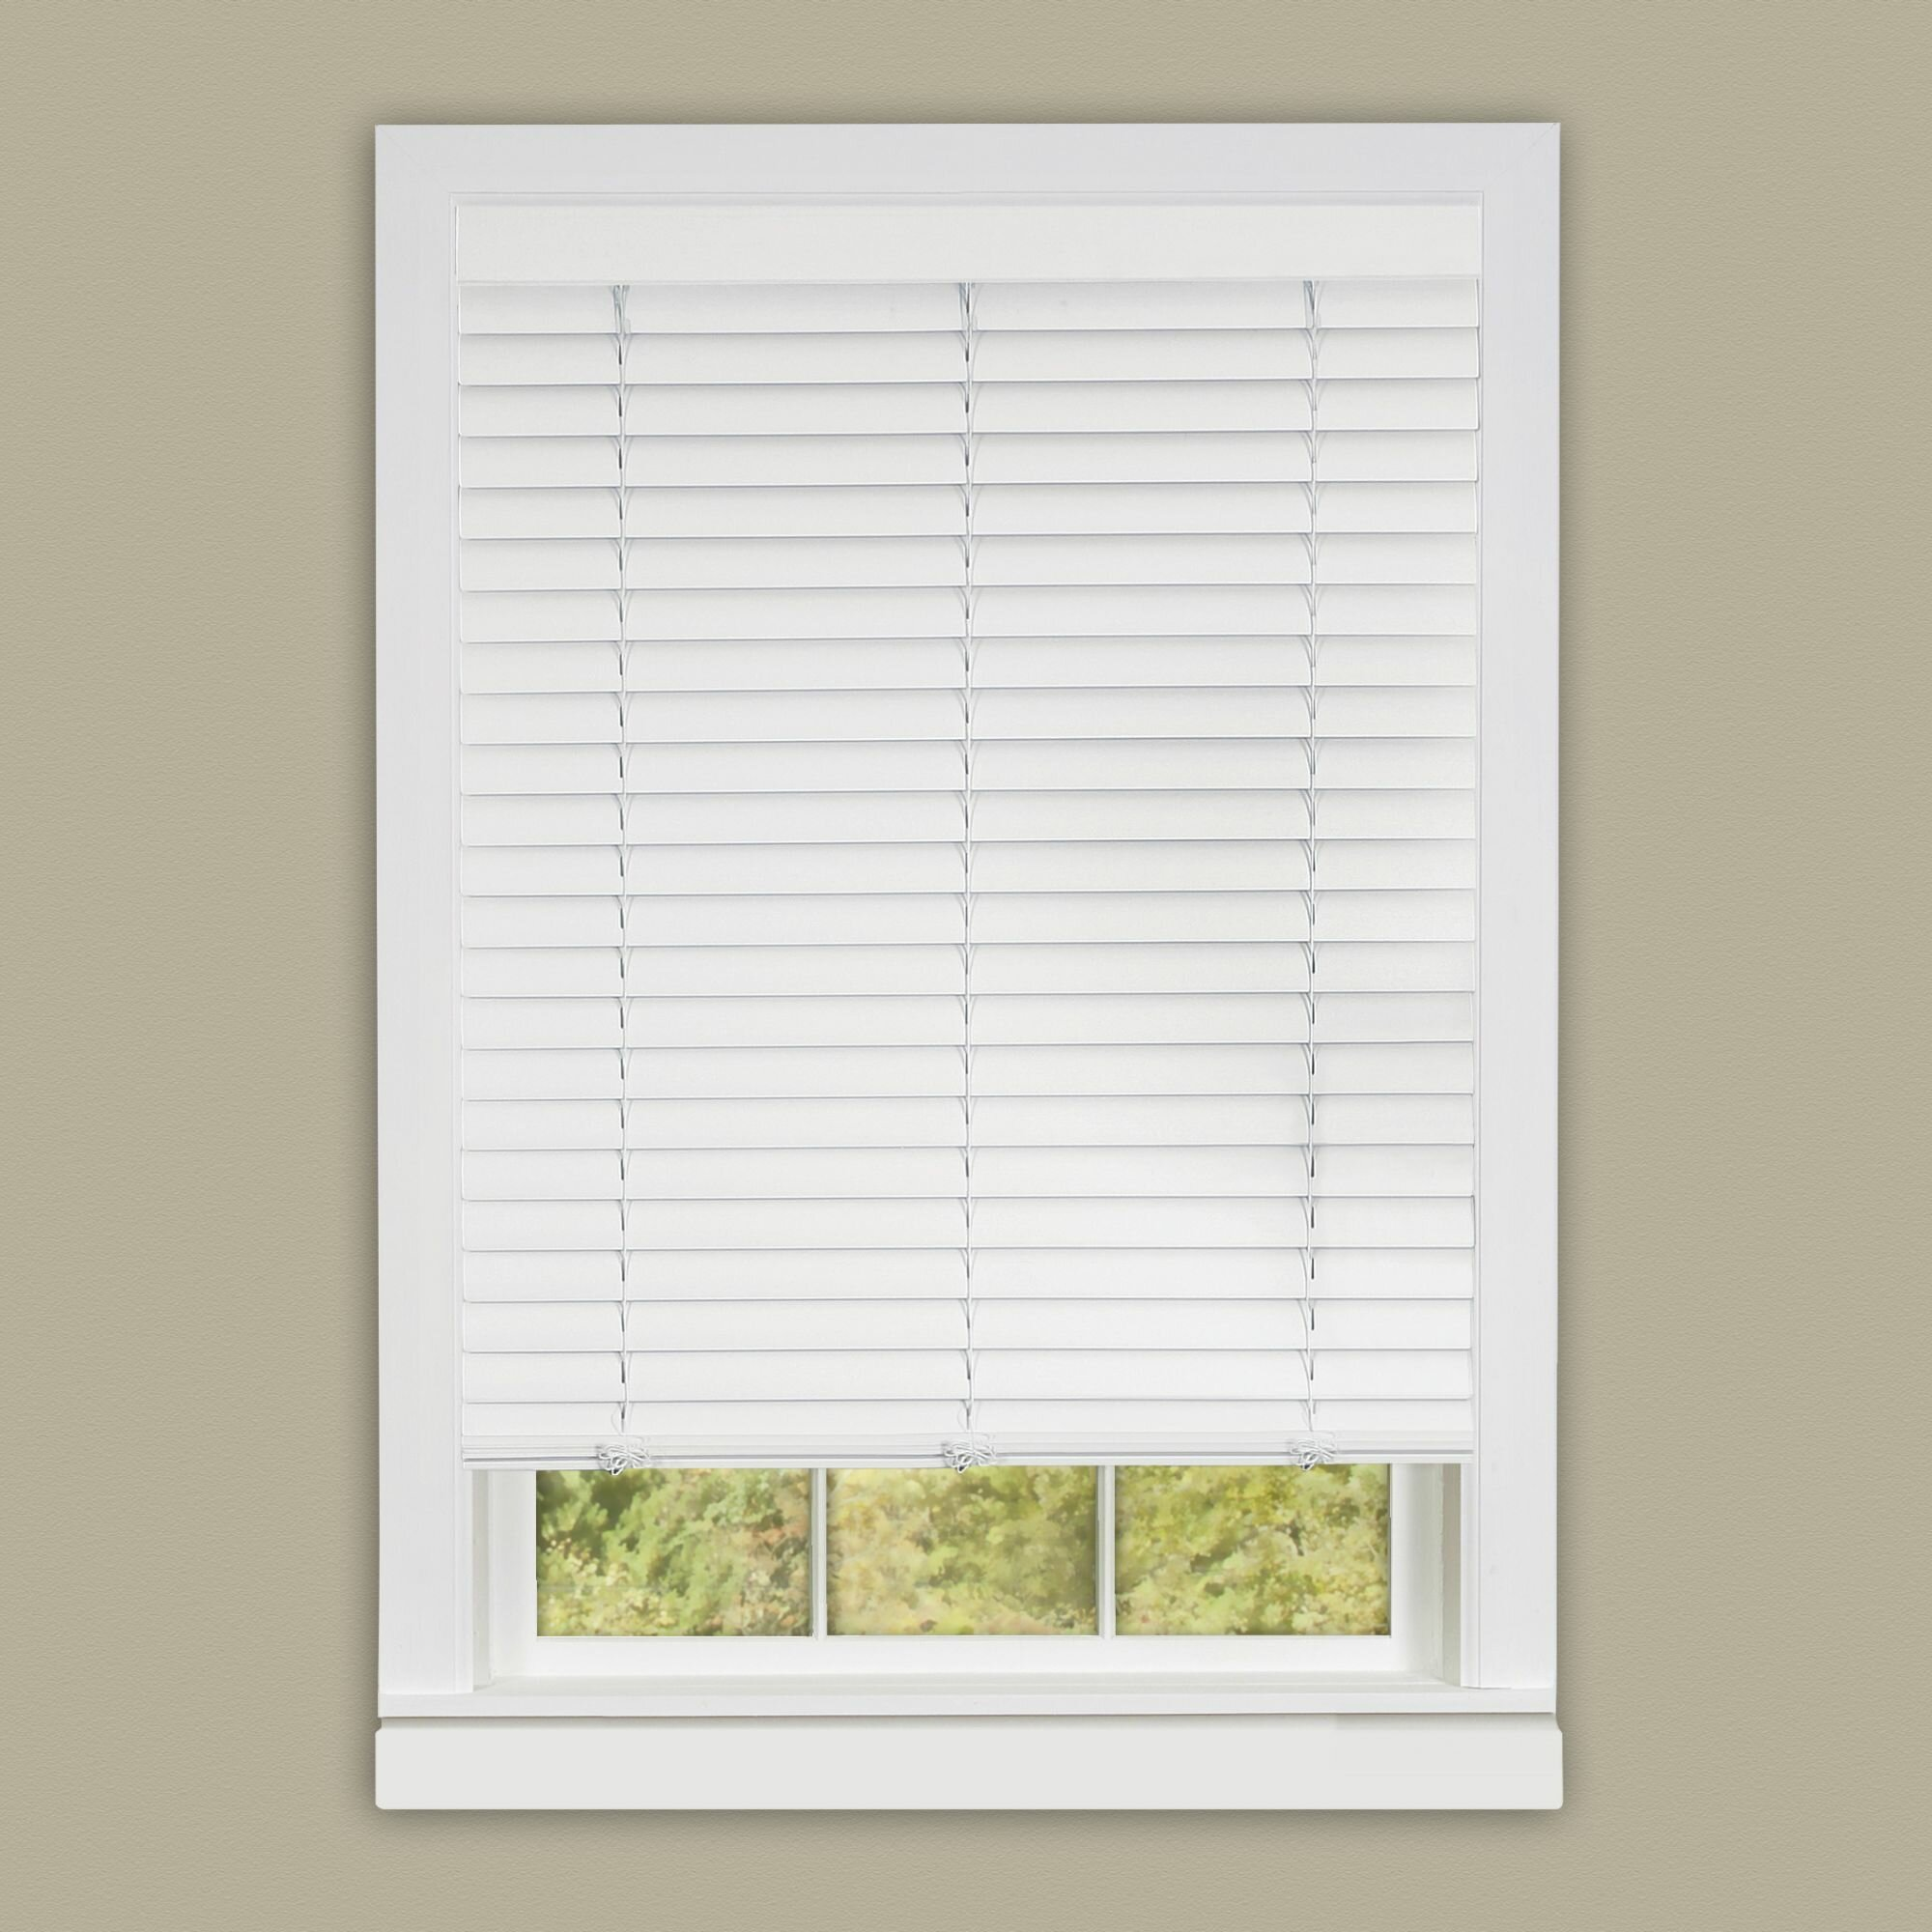 installing window bay shutters a image and perfect the for blinds